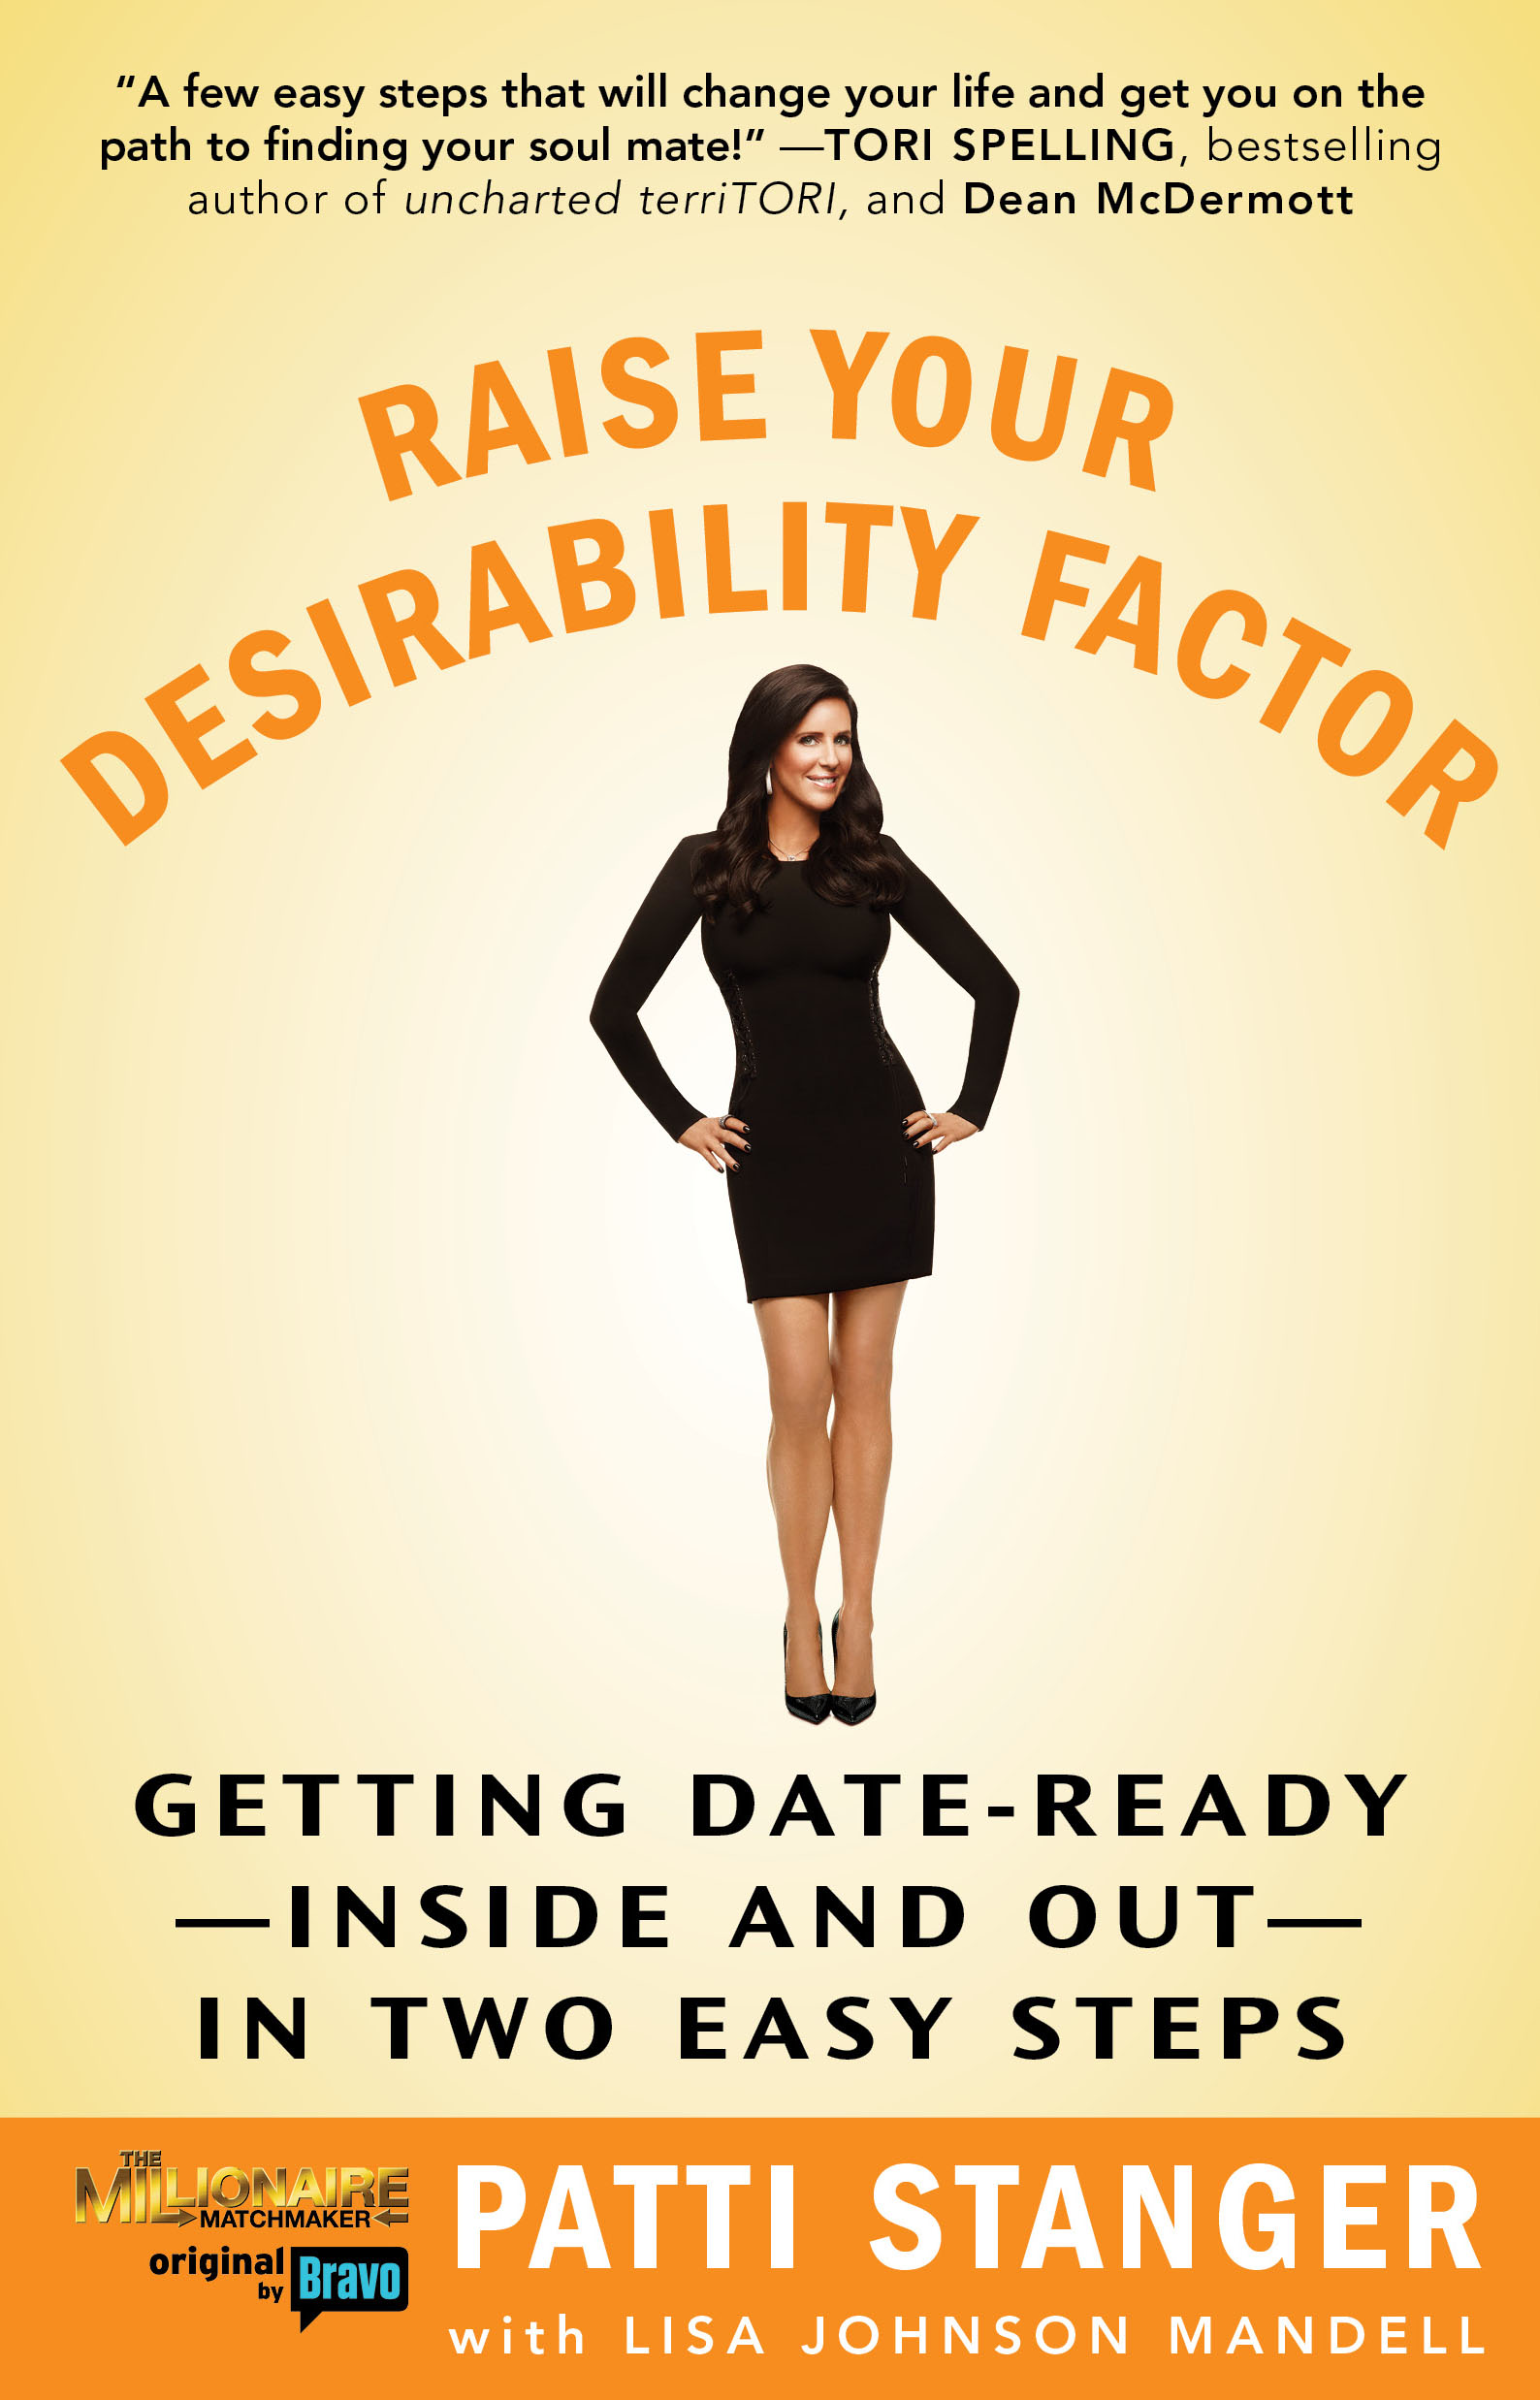 raise your desirability factor ebook by patti stanger official getting date ready inside and out in two easy steps raise your desirability factor